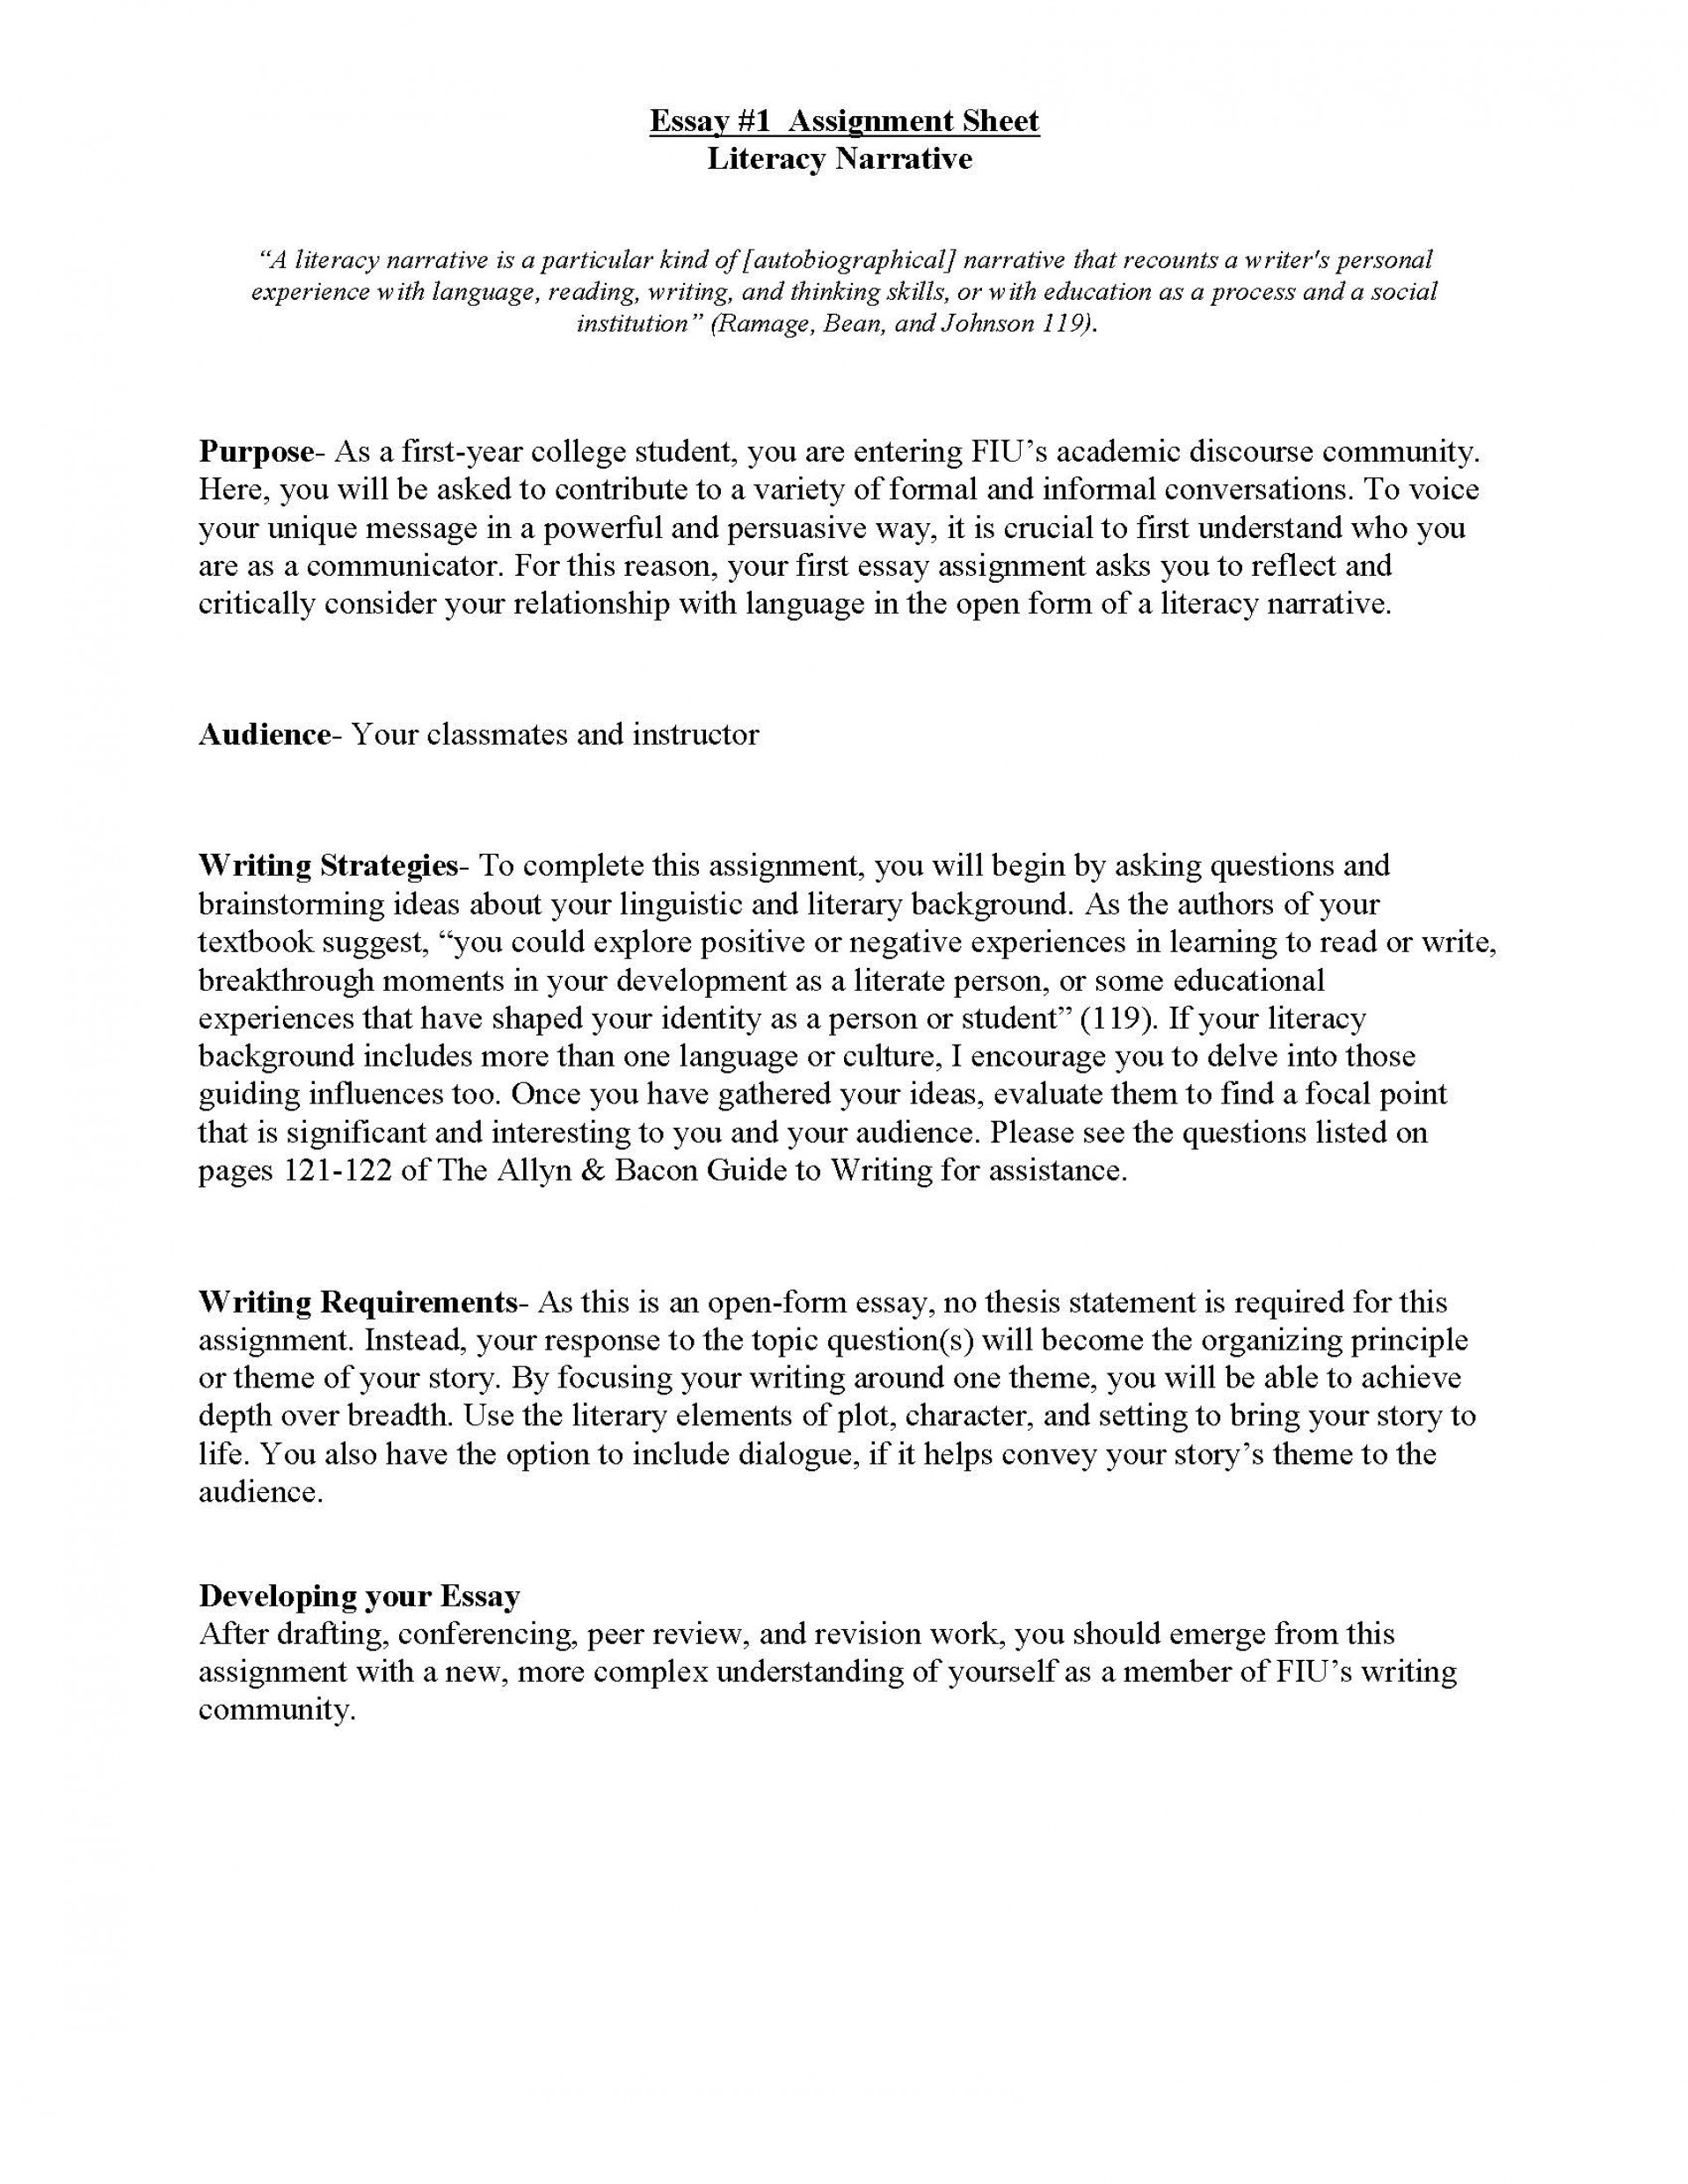 009 Literacy Narrative Unit Assignment Spring 2012 Page 1 Research Paper List Of Topics For In Sensational Education 1920